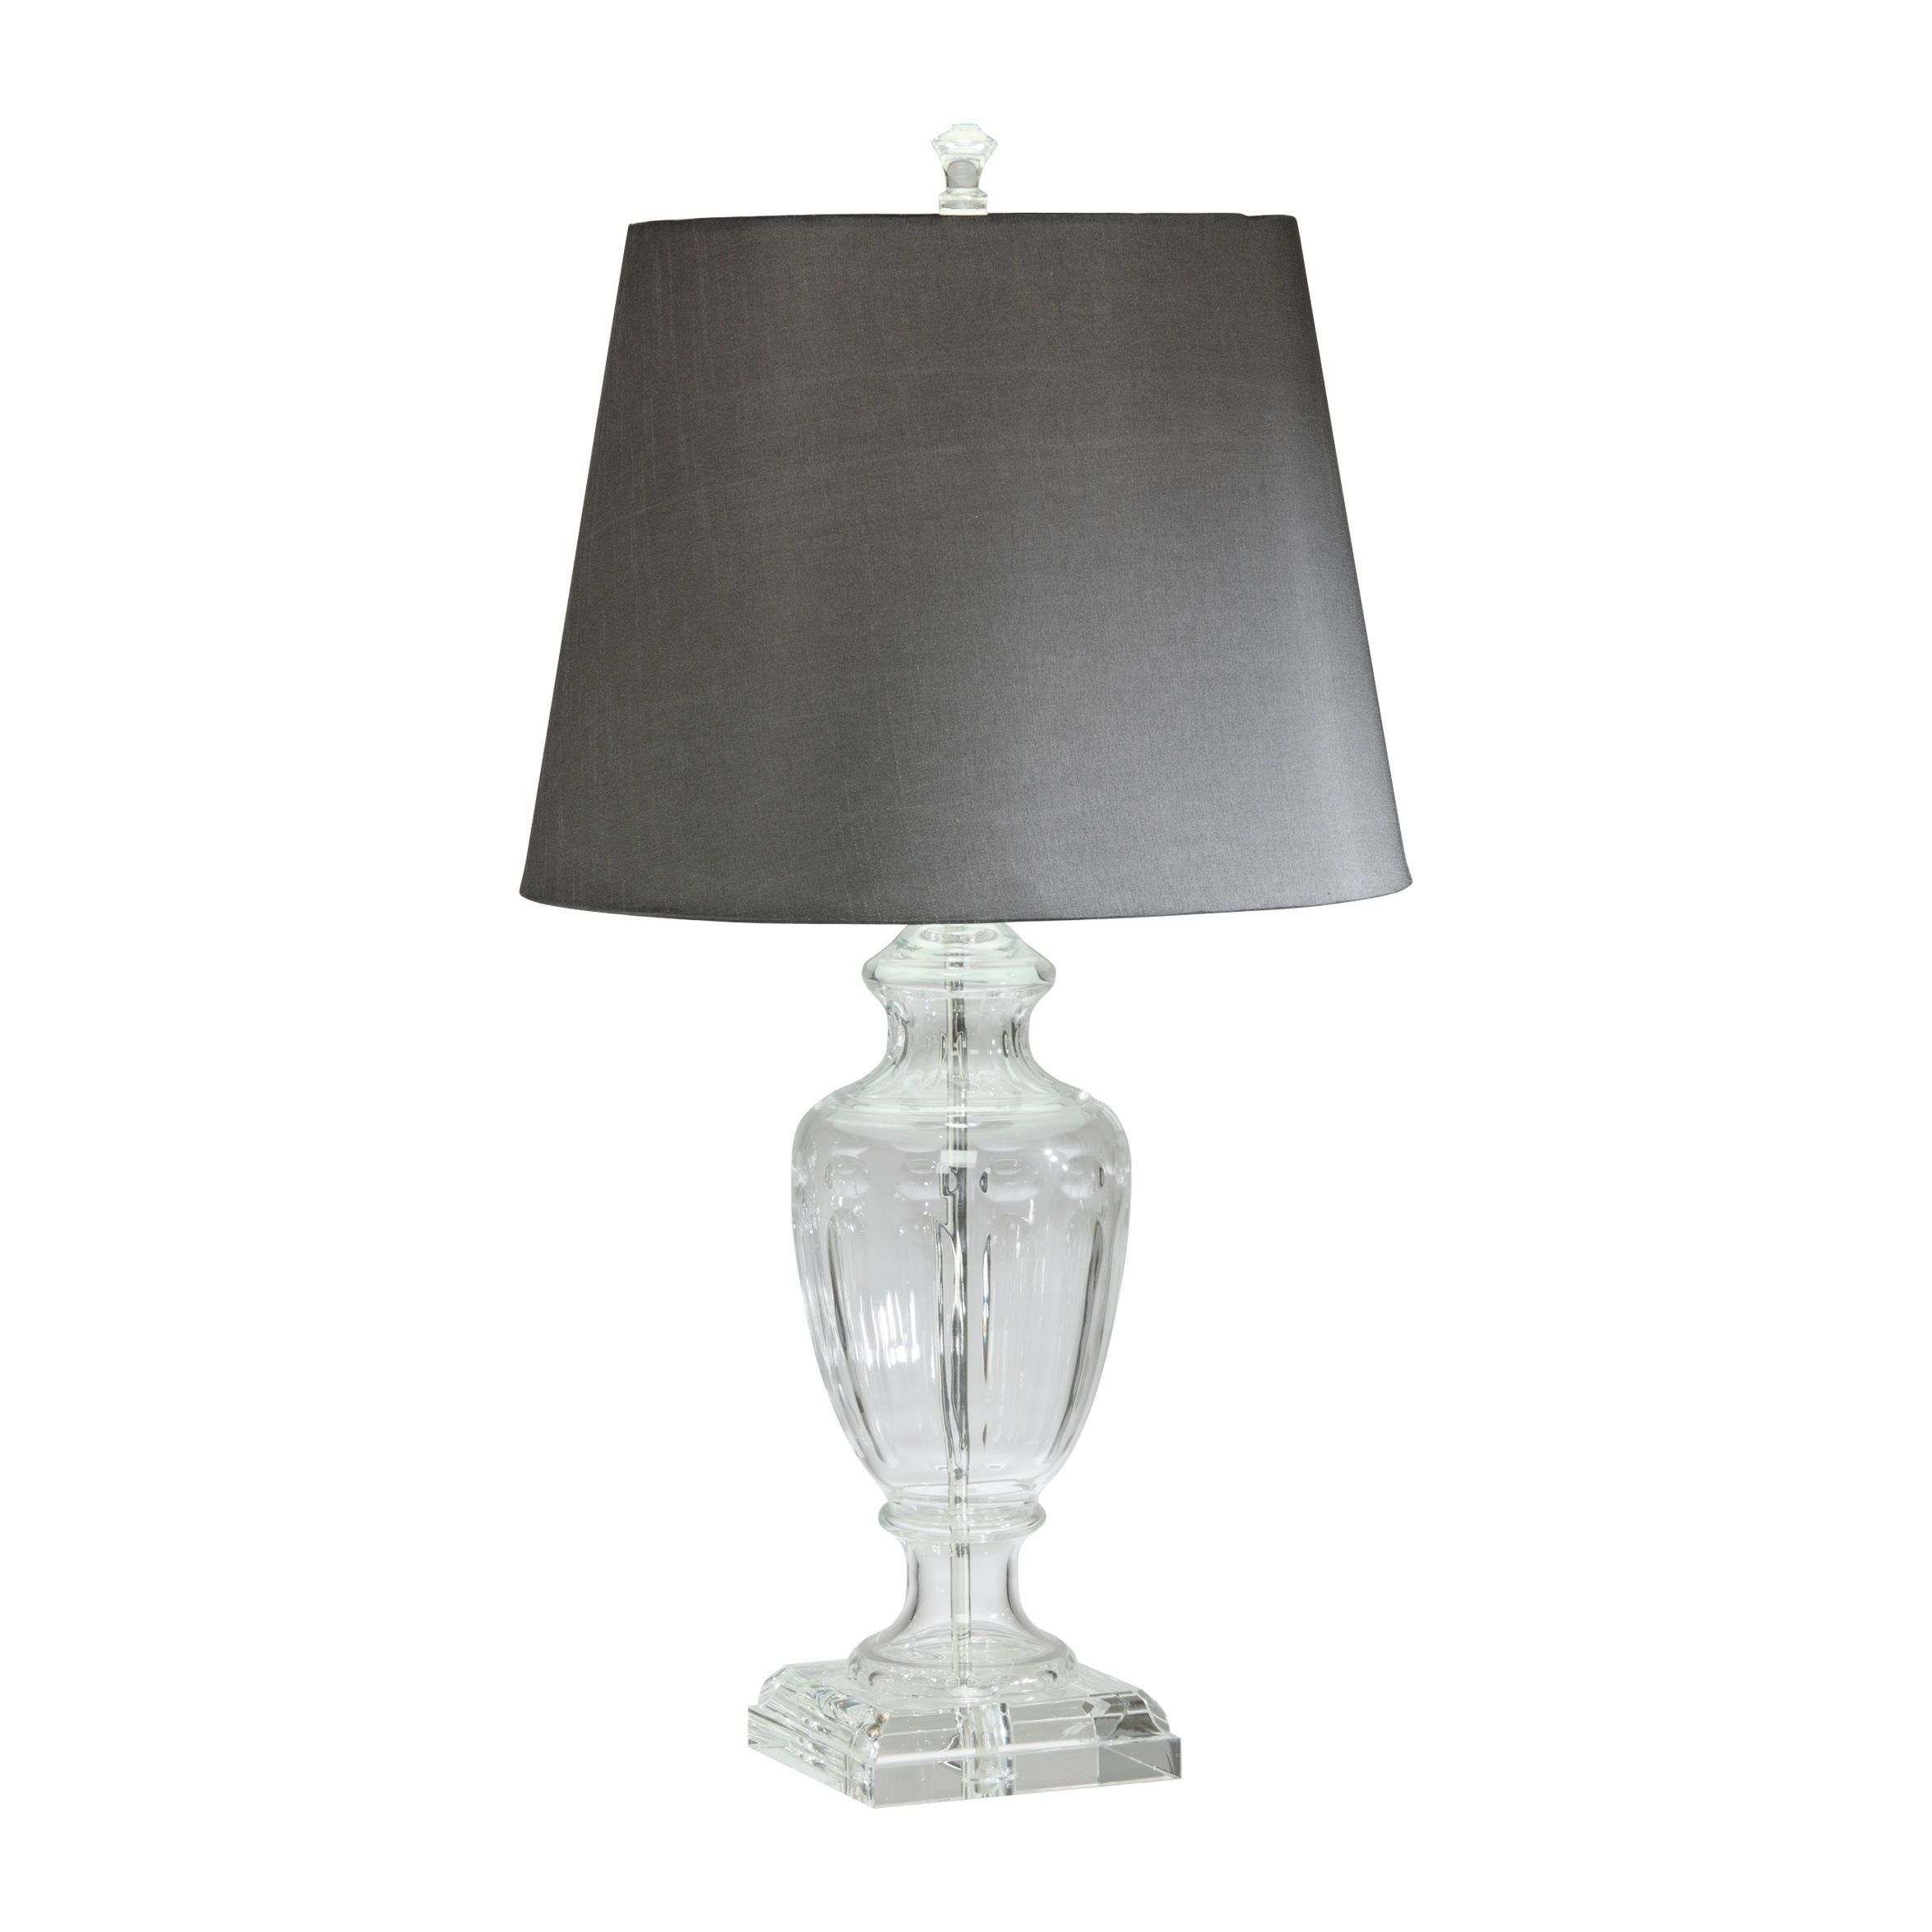 Beekman crystal table lamp ethan allen us zandpour living room beekman crystal table lamp ethan allen us geotapseo Choice Image